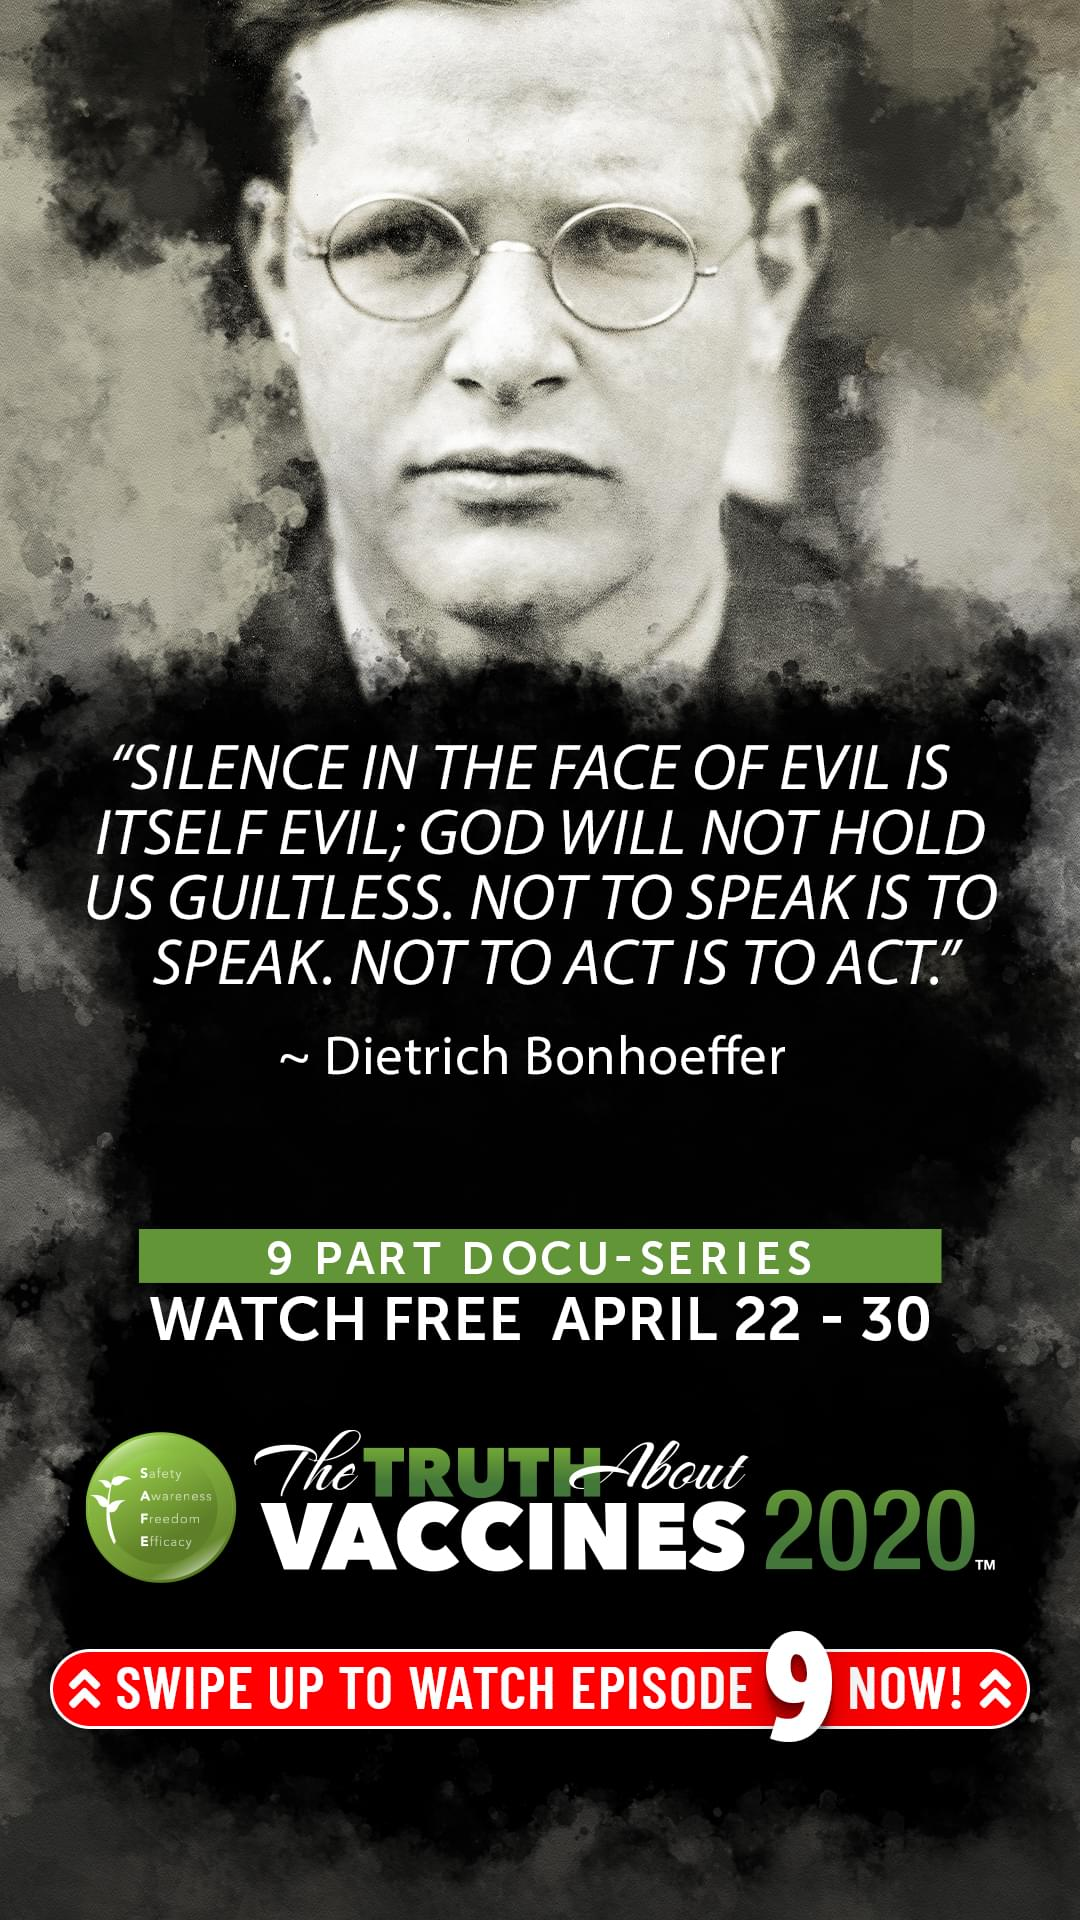 TTAV-ep09-Video_Quotes-Dietrich_Bonhoeffer-IG-1080X1920-SWIPE-min